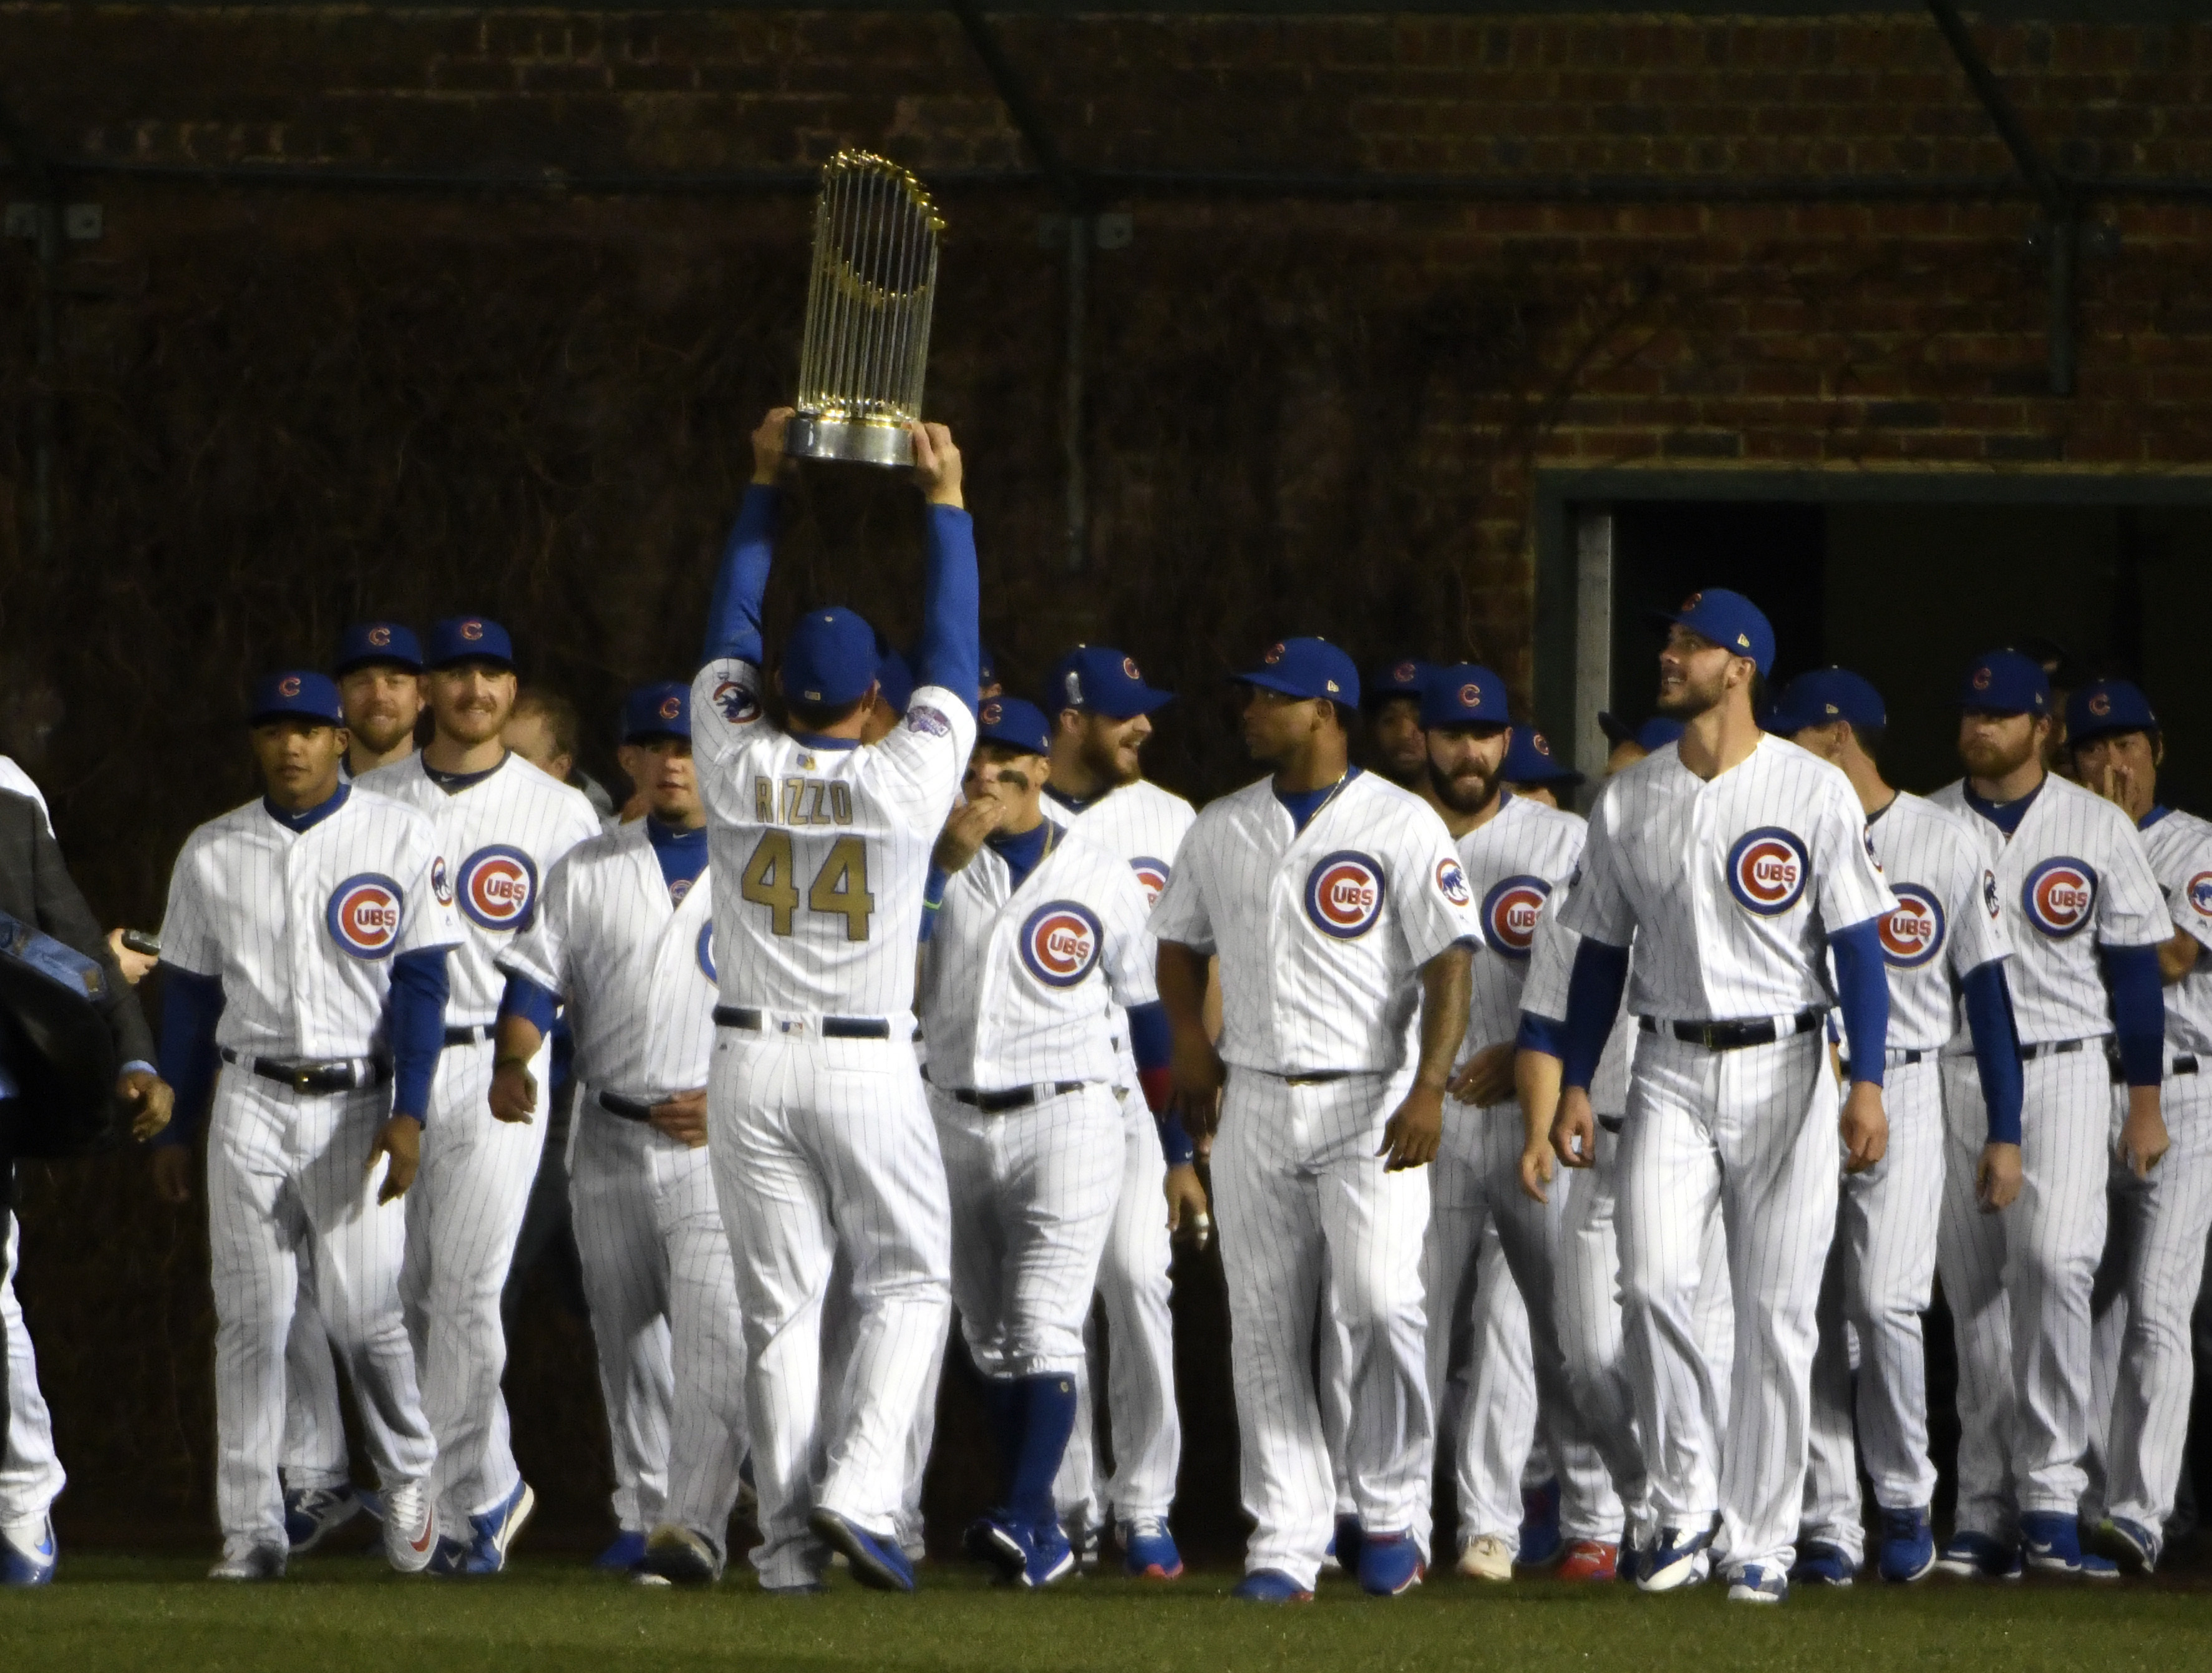 Cubs first baseman Anthony Rizzo (44) carries the 2016 World Series Championship trophy onto the field after the Cubs took turns raising the team's first championship banner in 108 years. (AP Photo/David Banks)